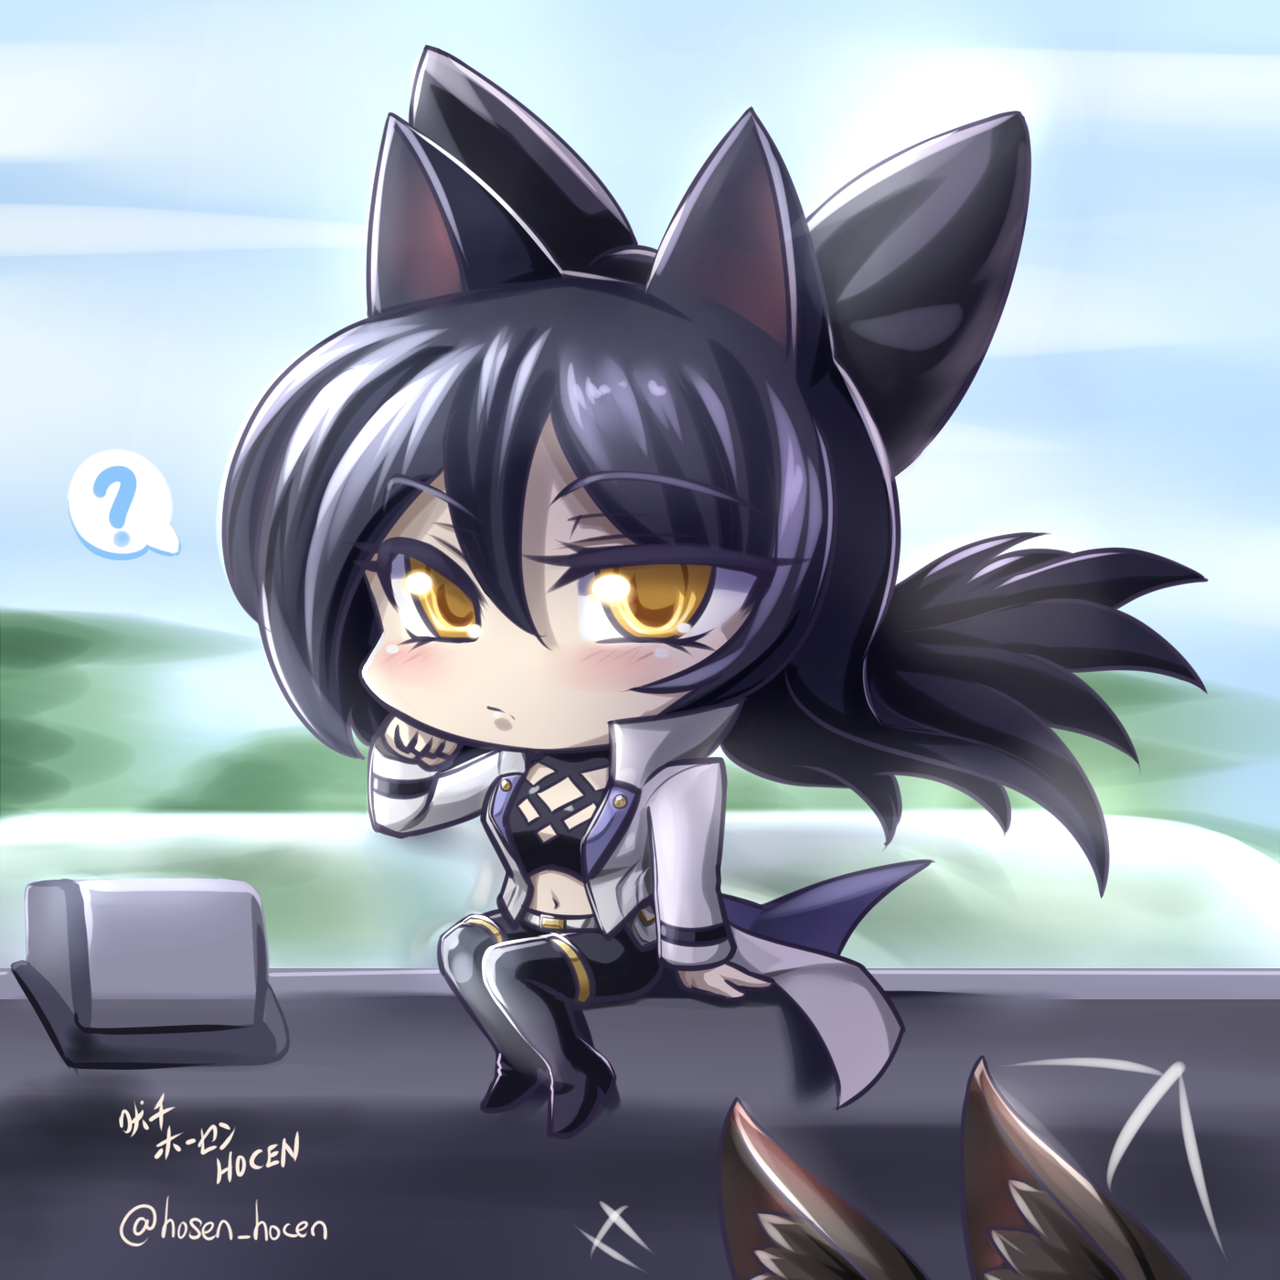 Pin by Trey on rwby Rwby, Rwby fanart, Chibi